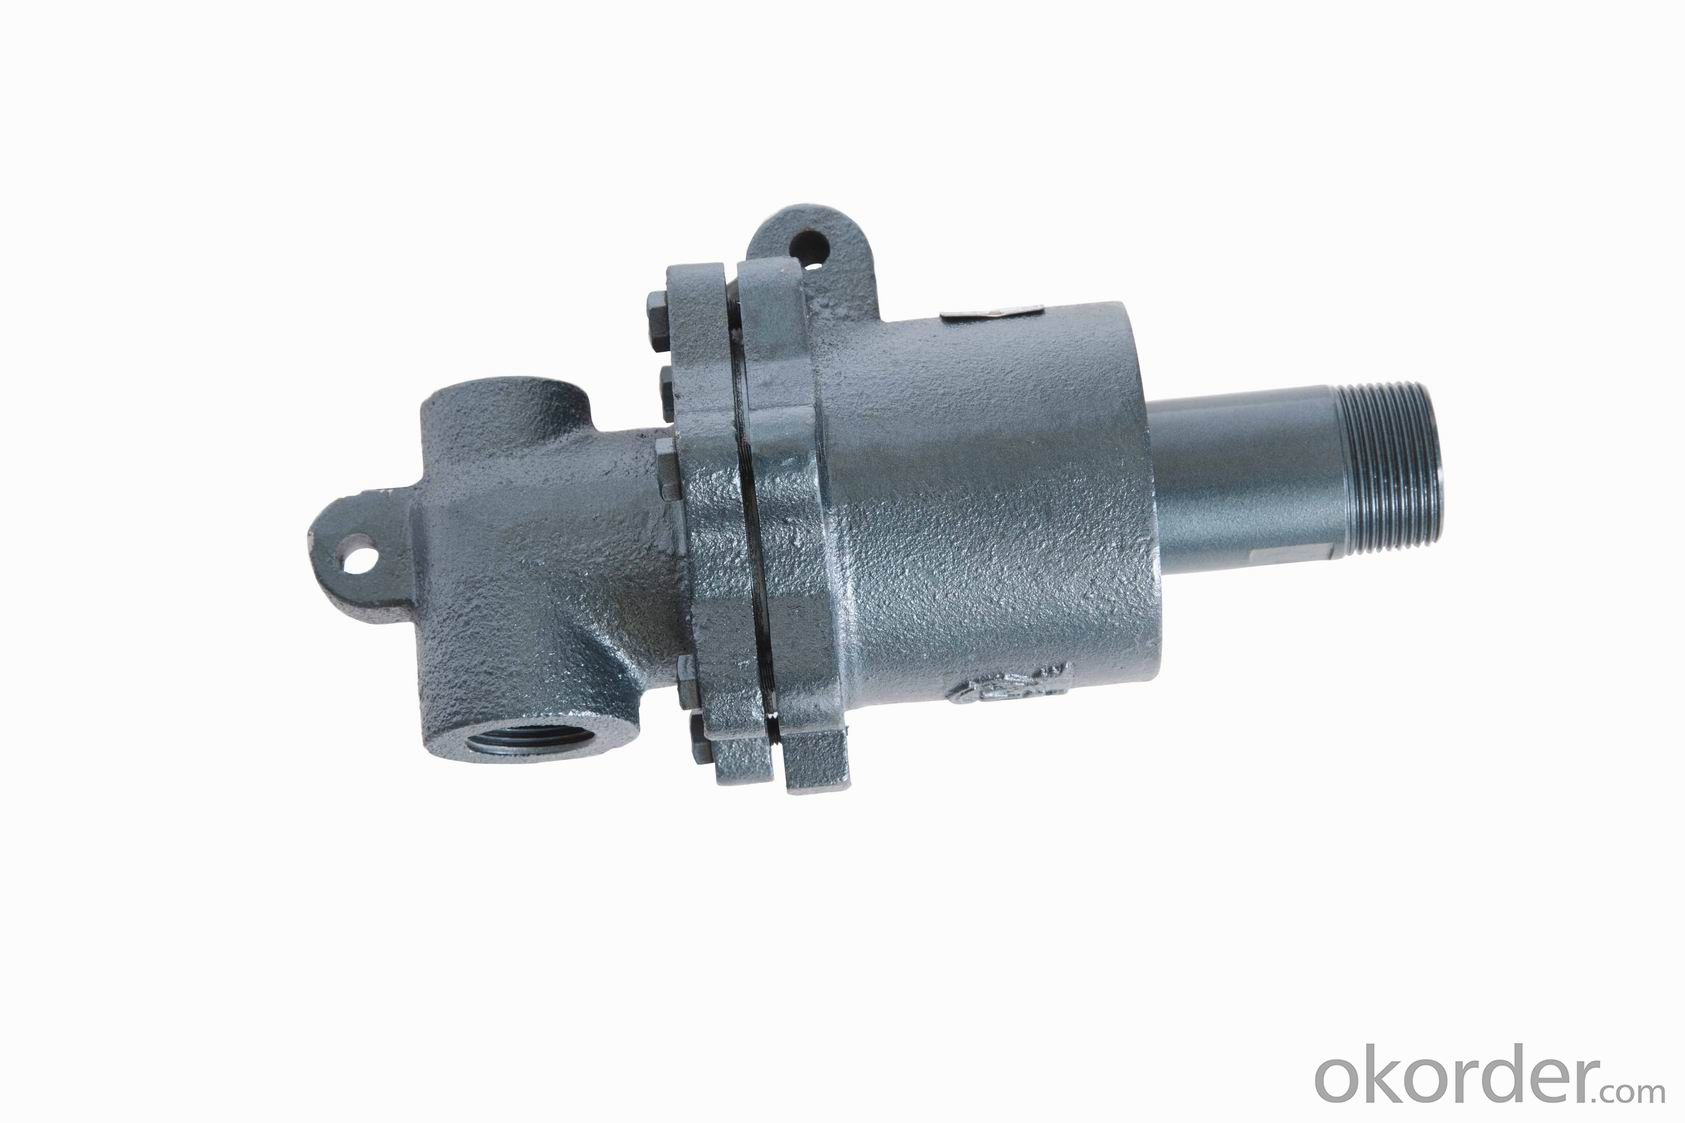 RXE1020RH RXE1020LH industrial rotary joint